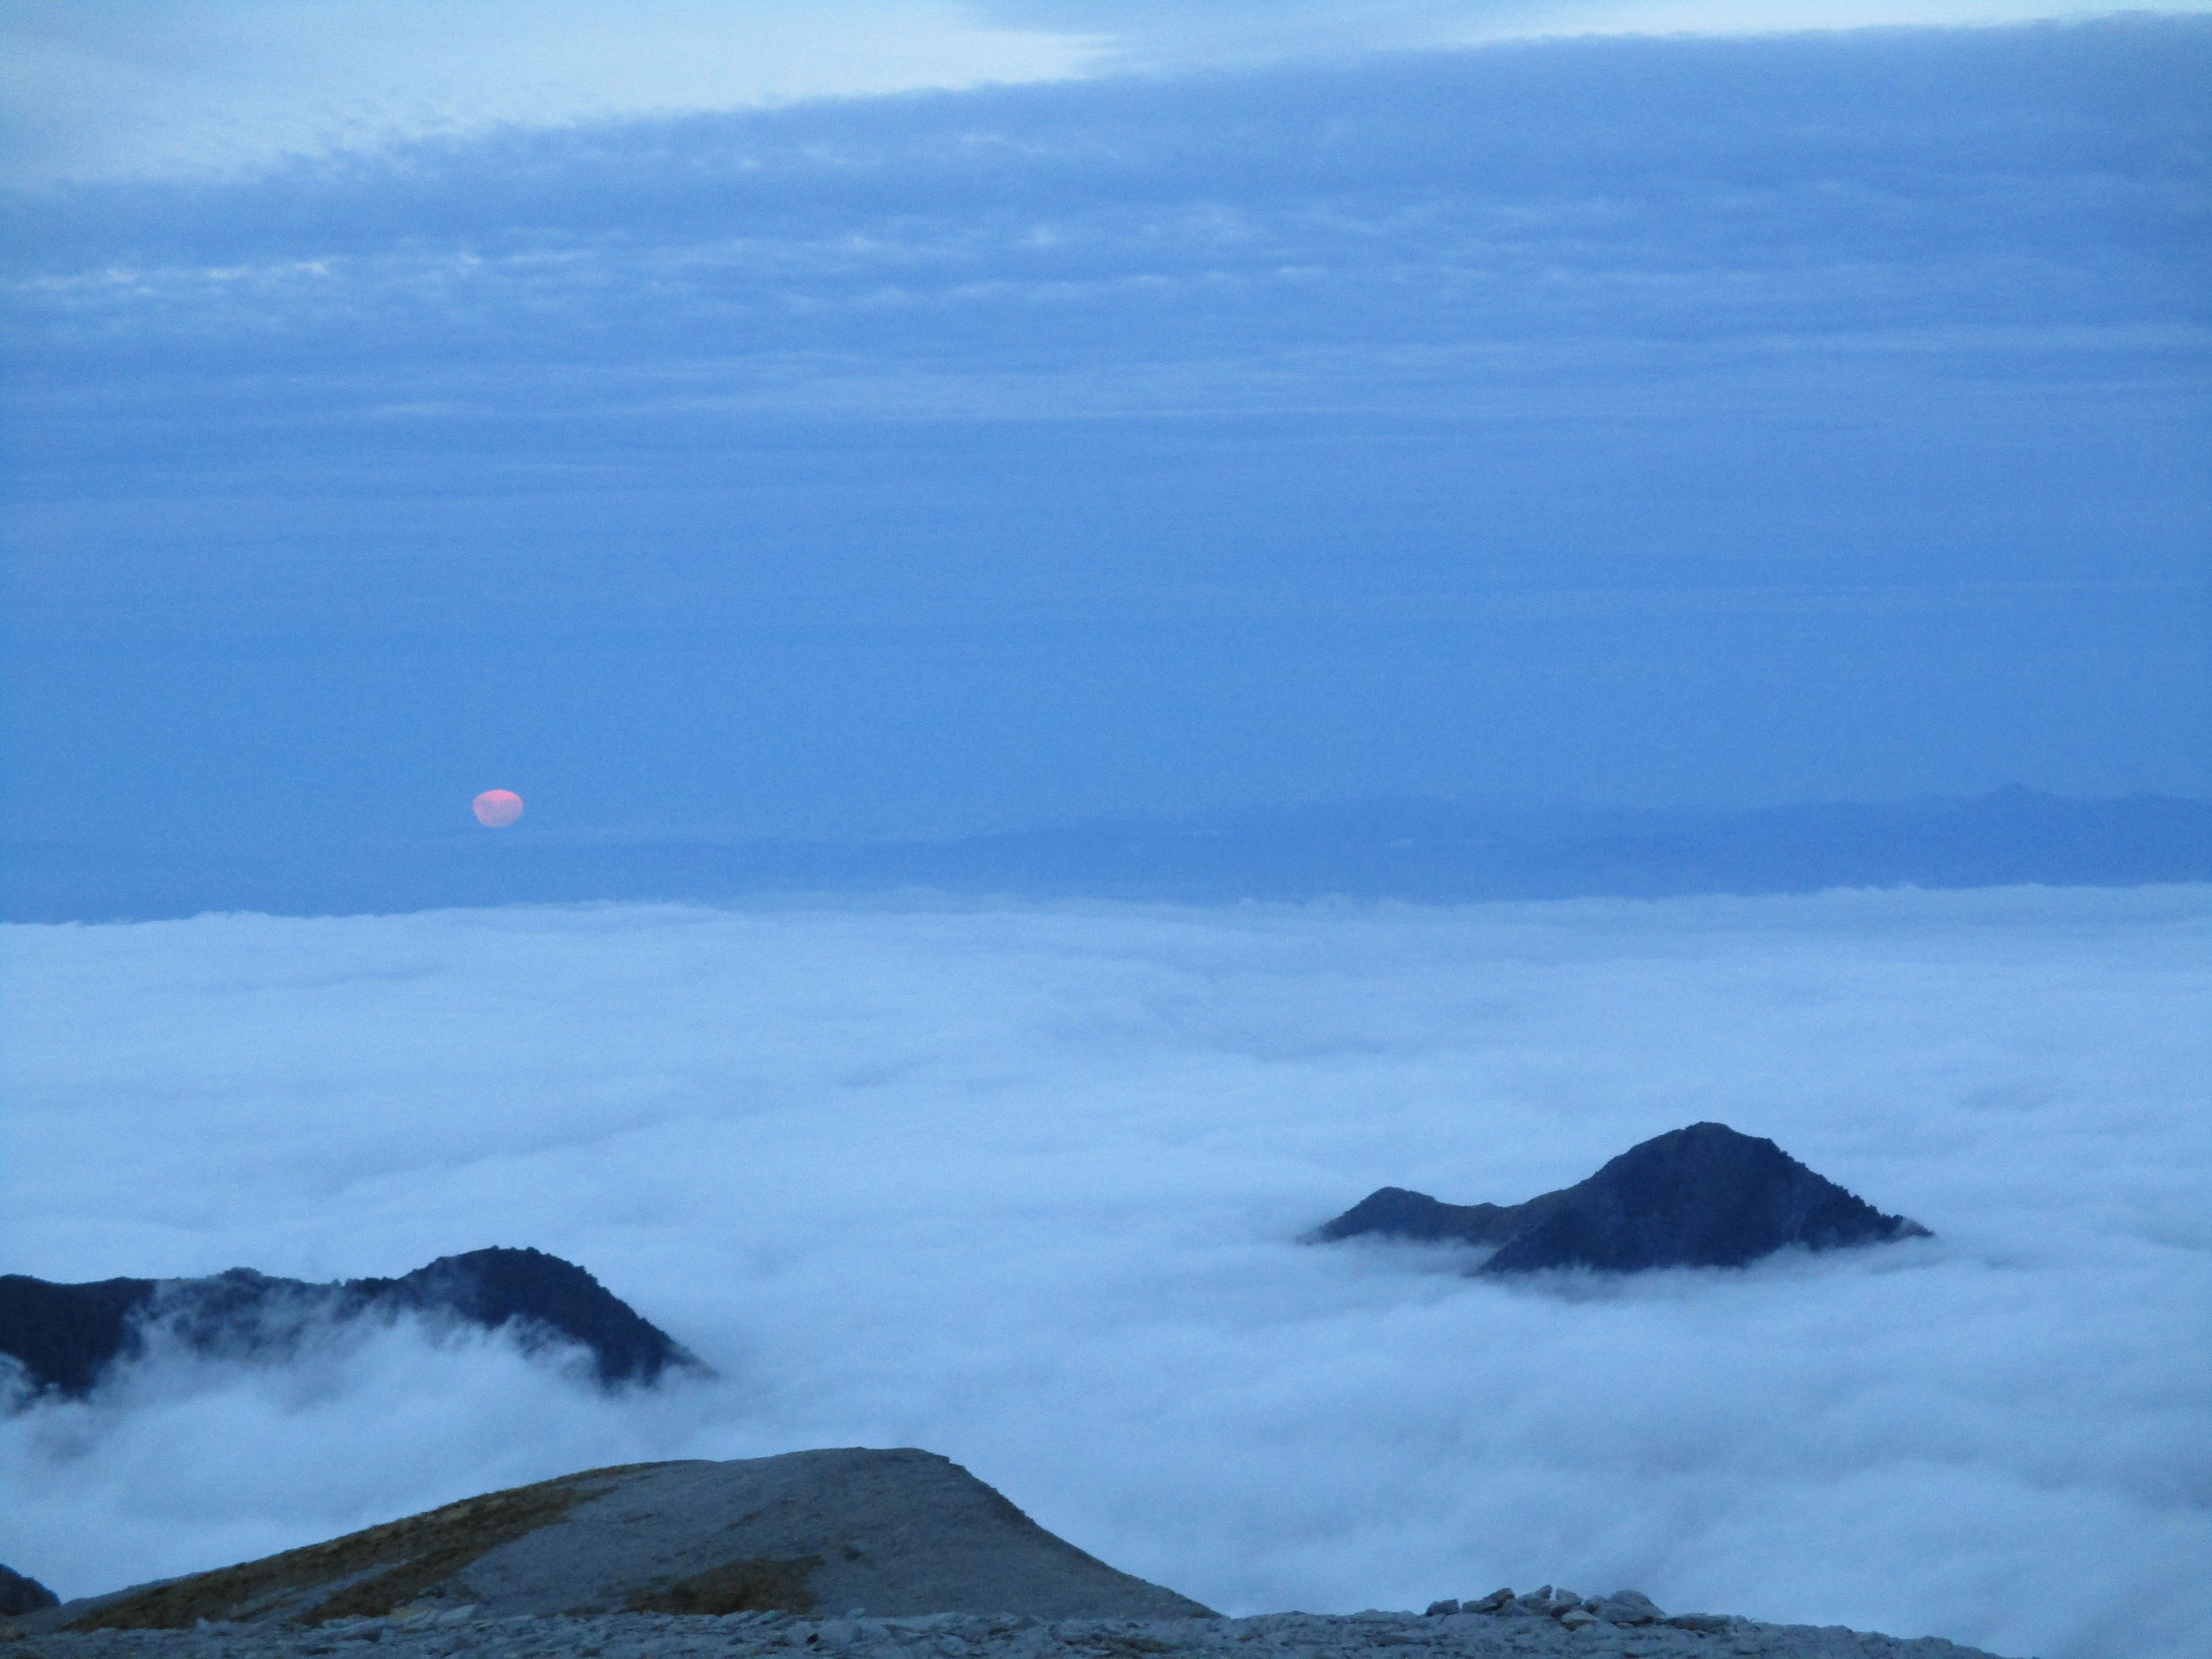 A full moon rising above the clouds.